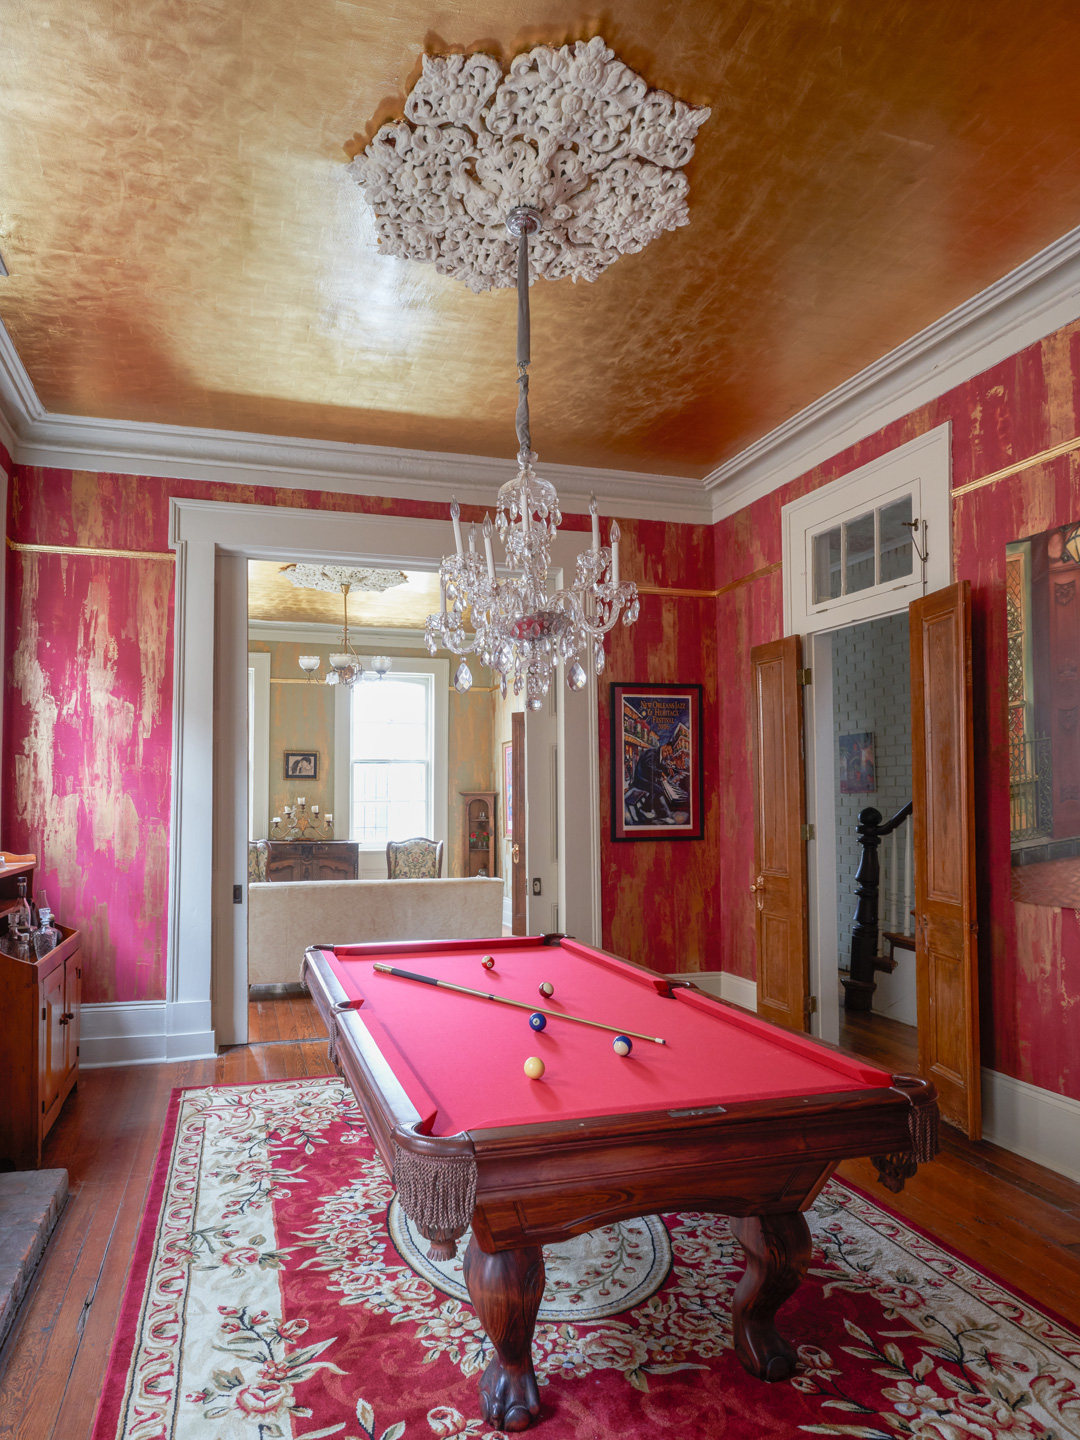 Sylvia T Designs – French Quarter Creole Cottage – Dramatic Plaster Finishes and Gold Leaf Ceilings – Wide shot of the billiard room with another view of the parlor. You can see how the elements and spaces complement each other.